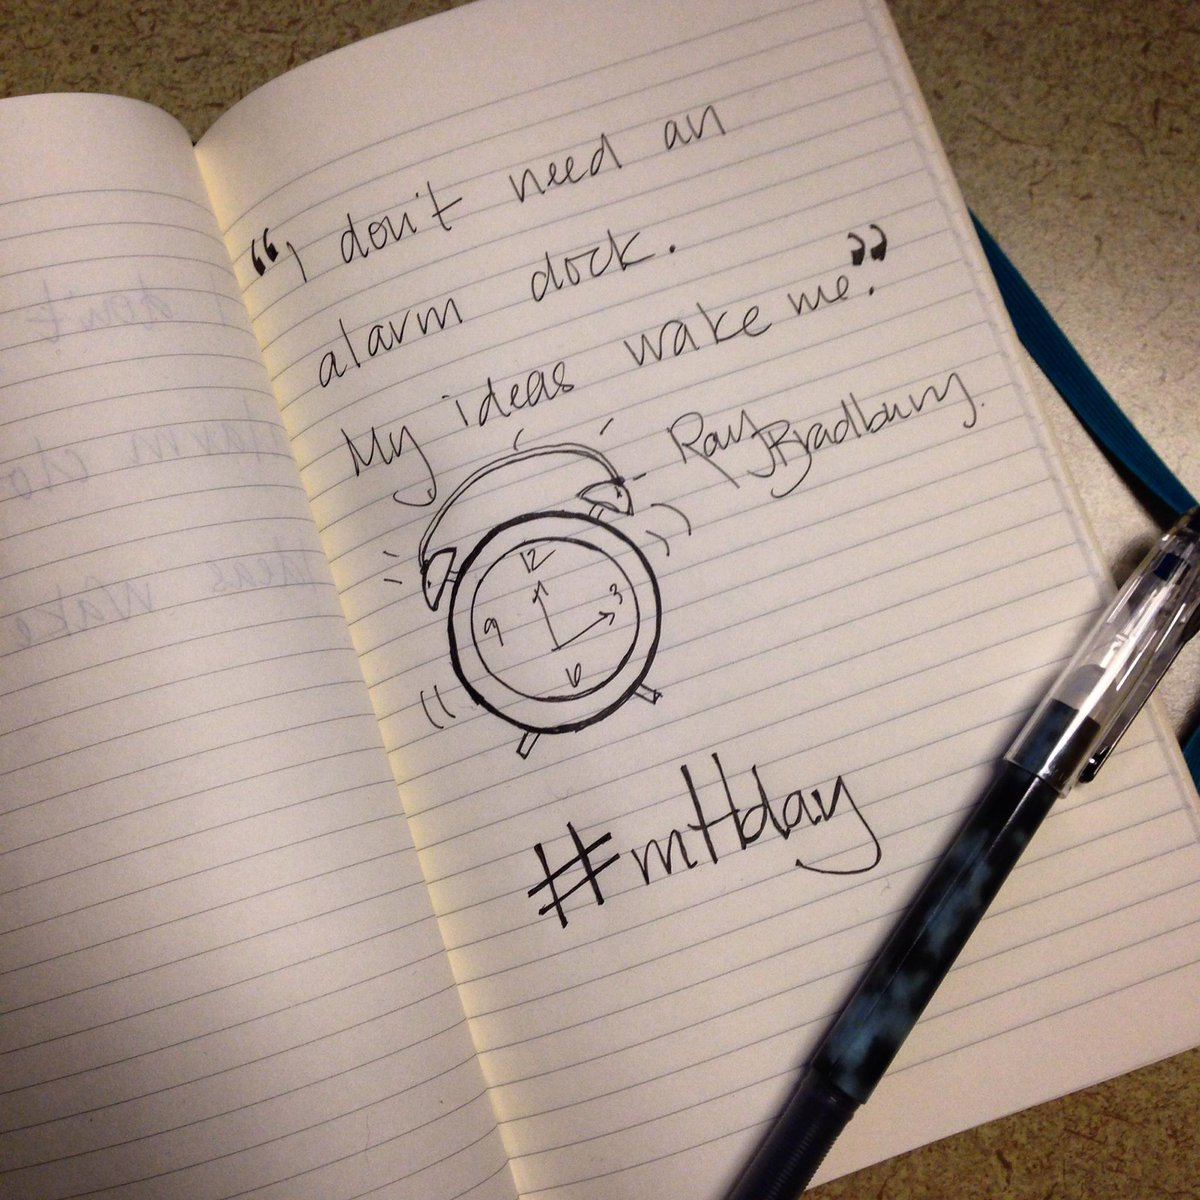 Celebrating #mHday with @moleskine! http://t.co/3EjsydR4oK